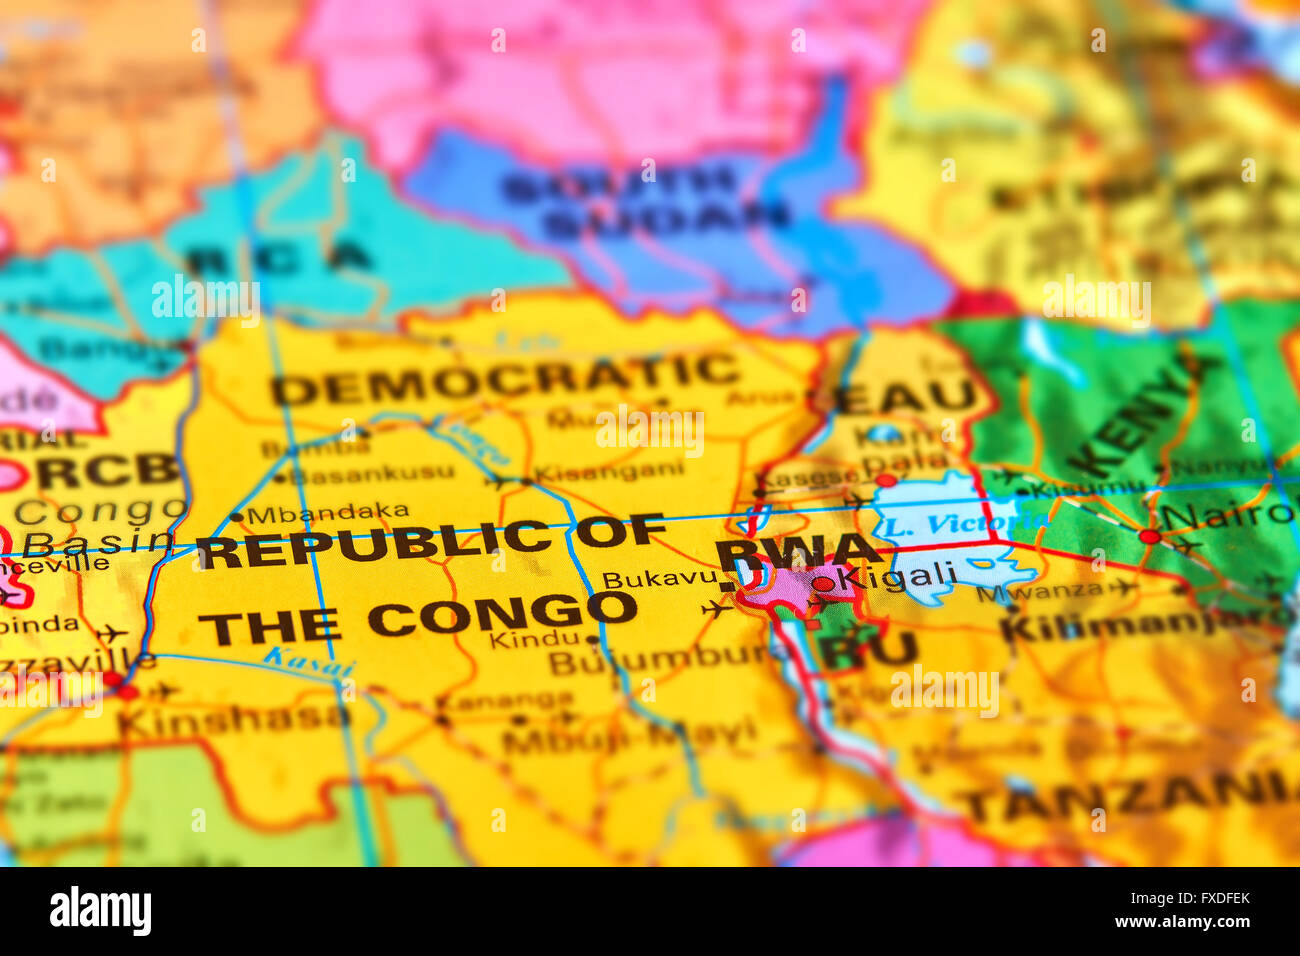 Democratic republic of congo in africa on the world map stock photo democratic republic of congo in africa on the world map gumiabroncs Gallery